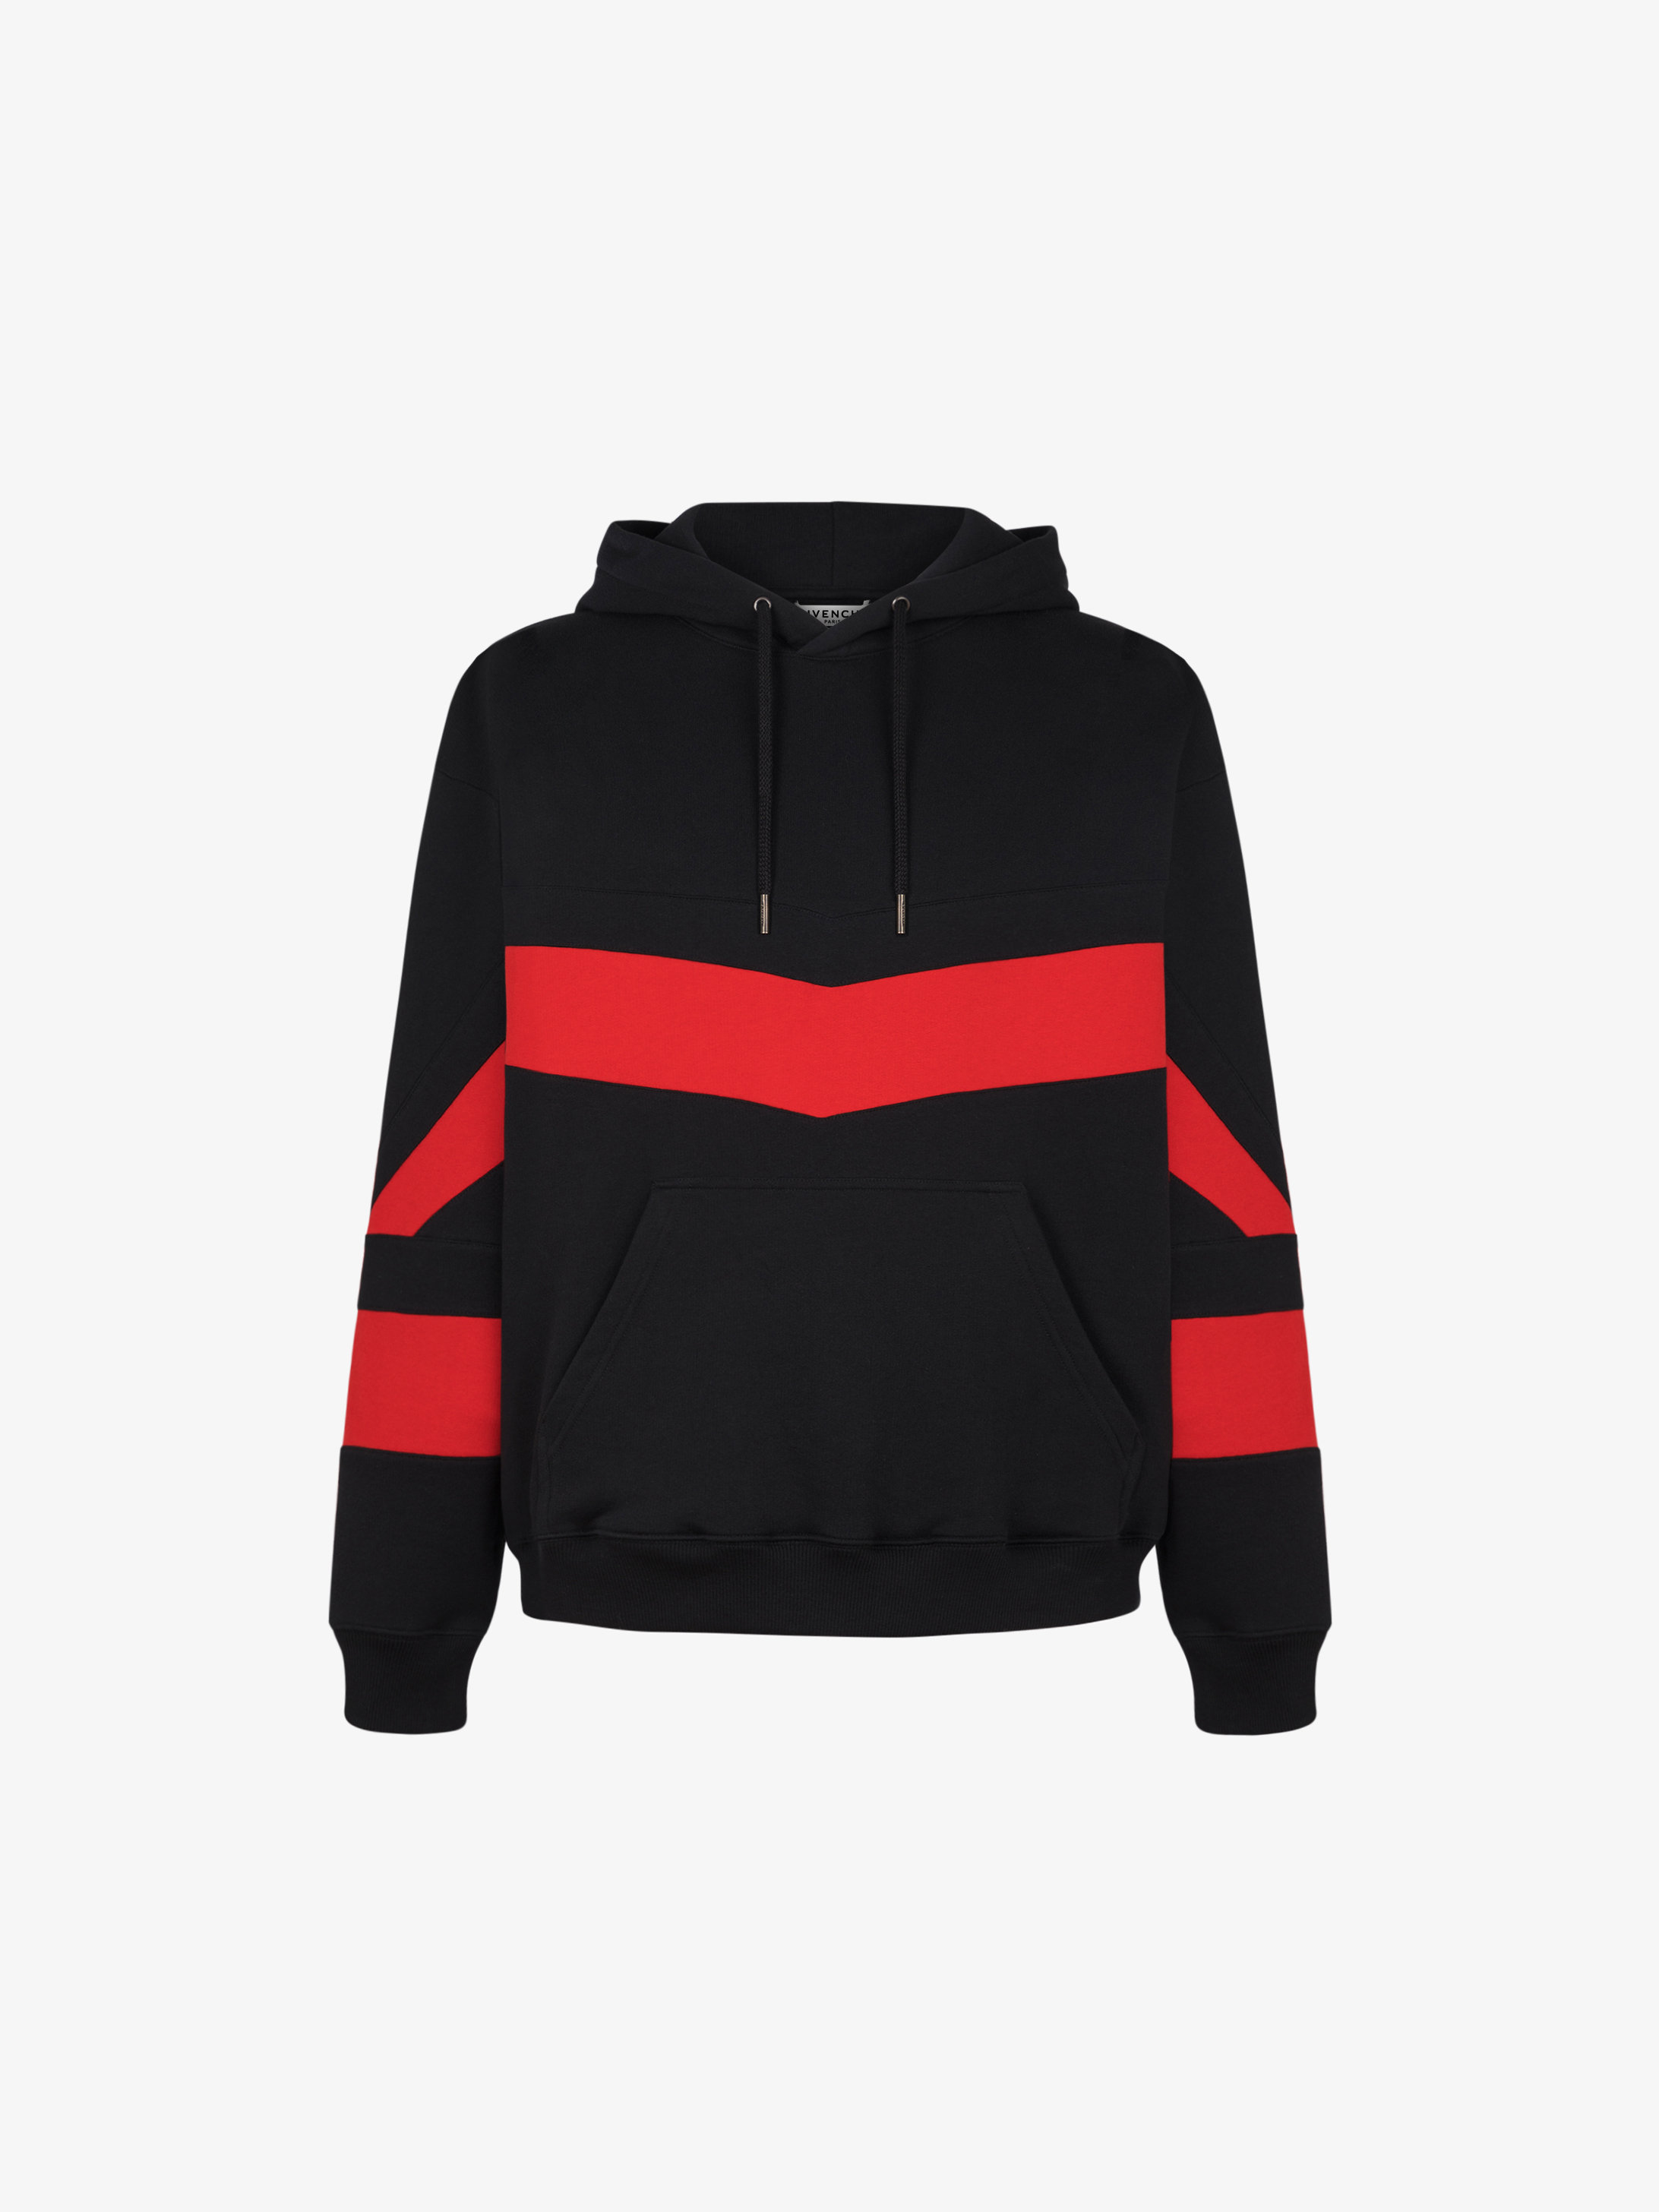 GIVENCHY hoodie with contrasting stripes